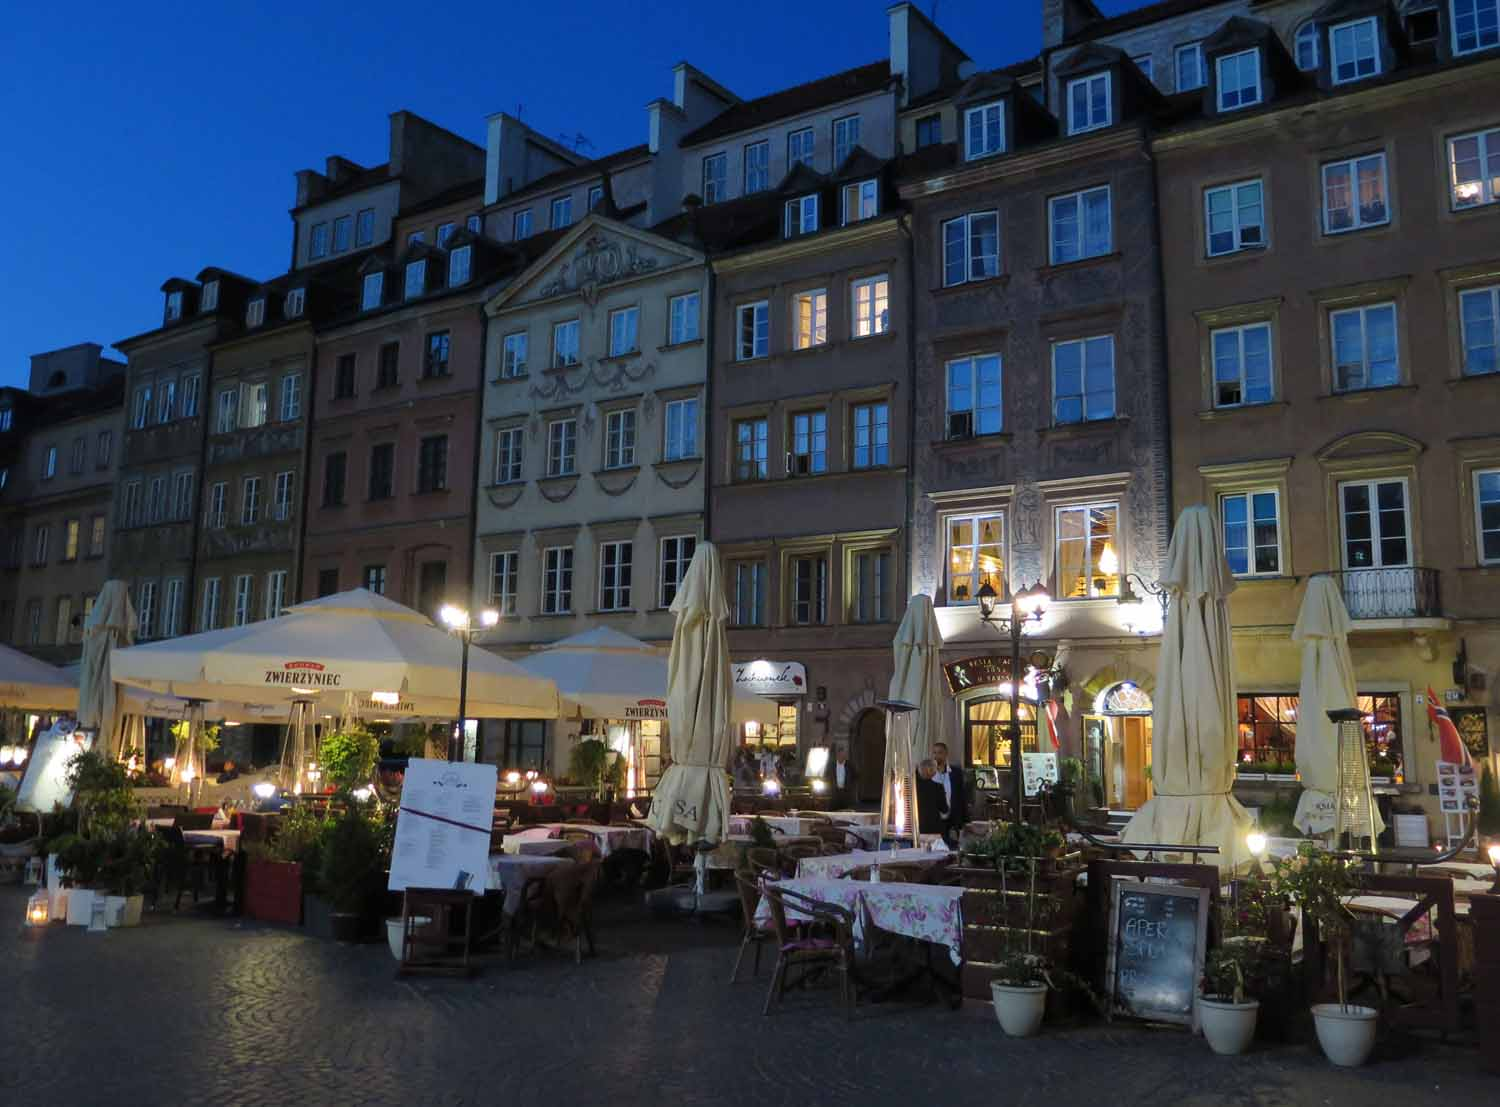 Poland-Warsaw-Old-Town-Square-Restaurants